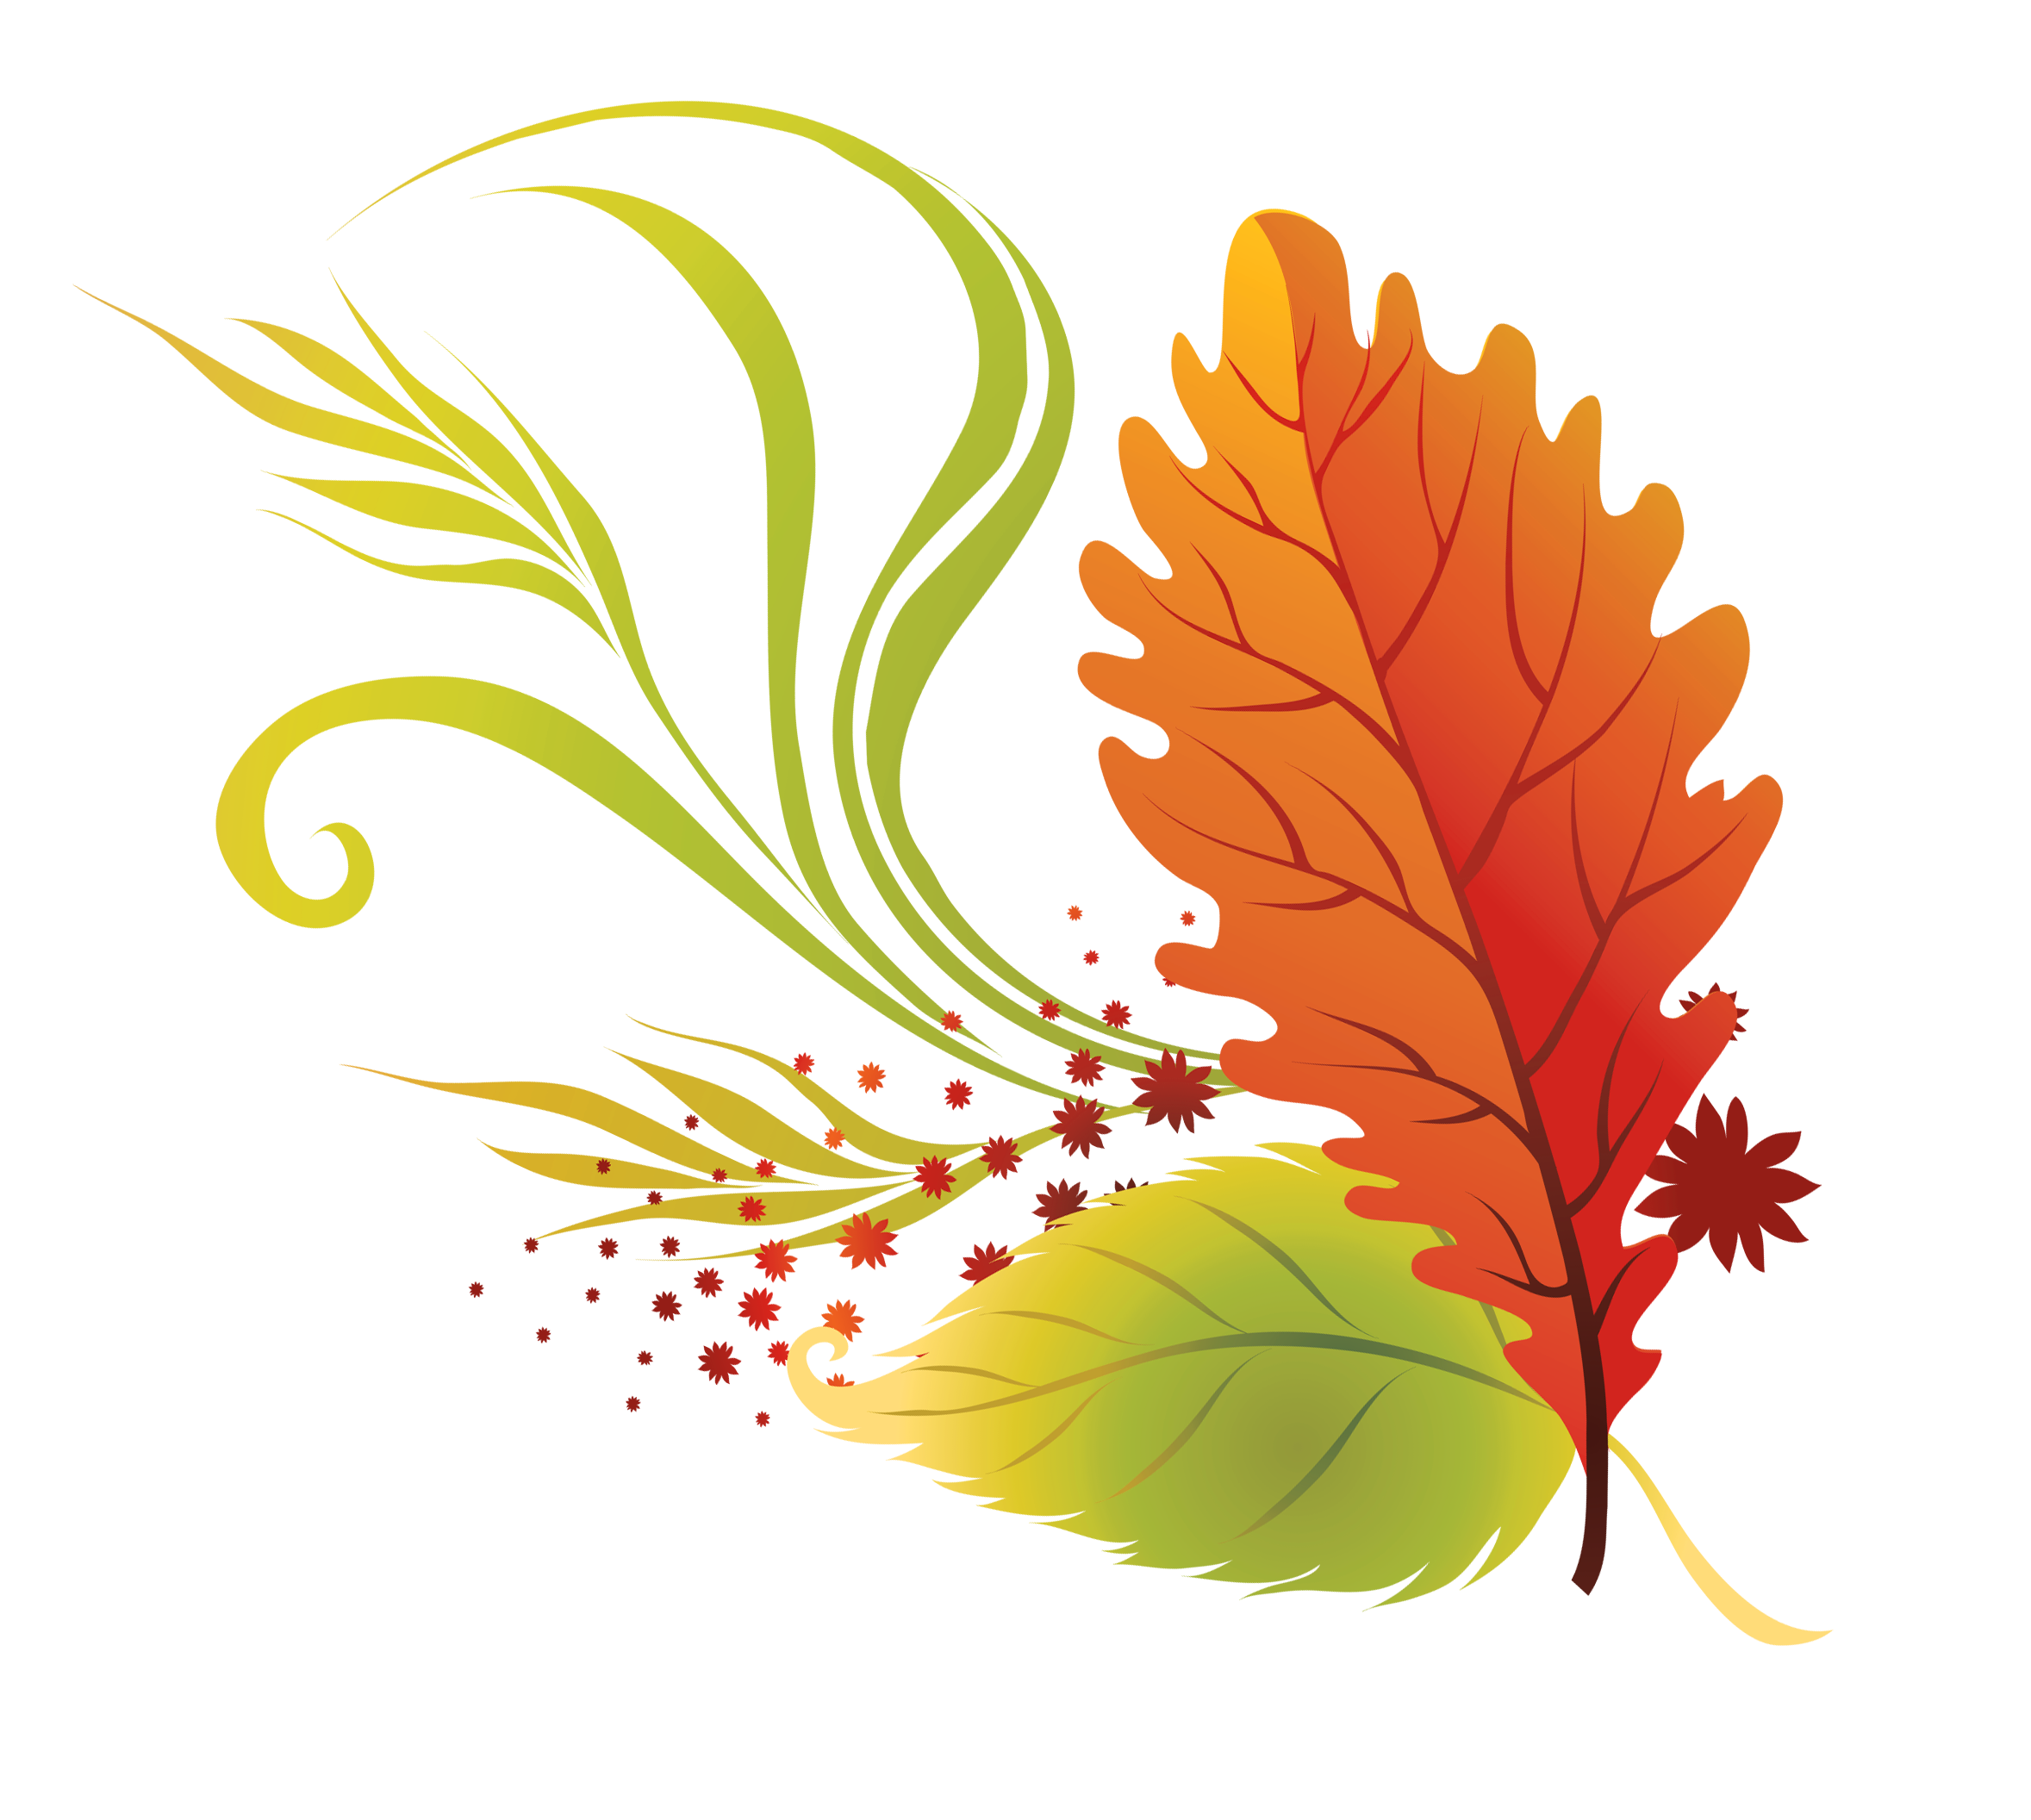 Mayflower clipart flowr. Transparent fall leaves png